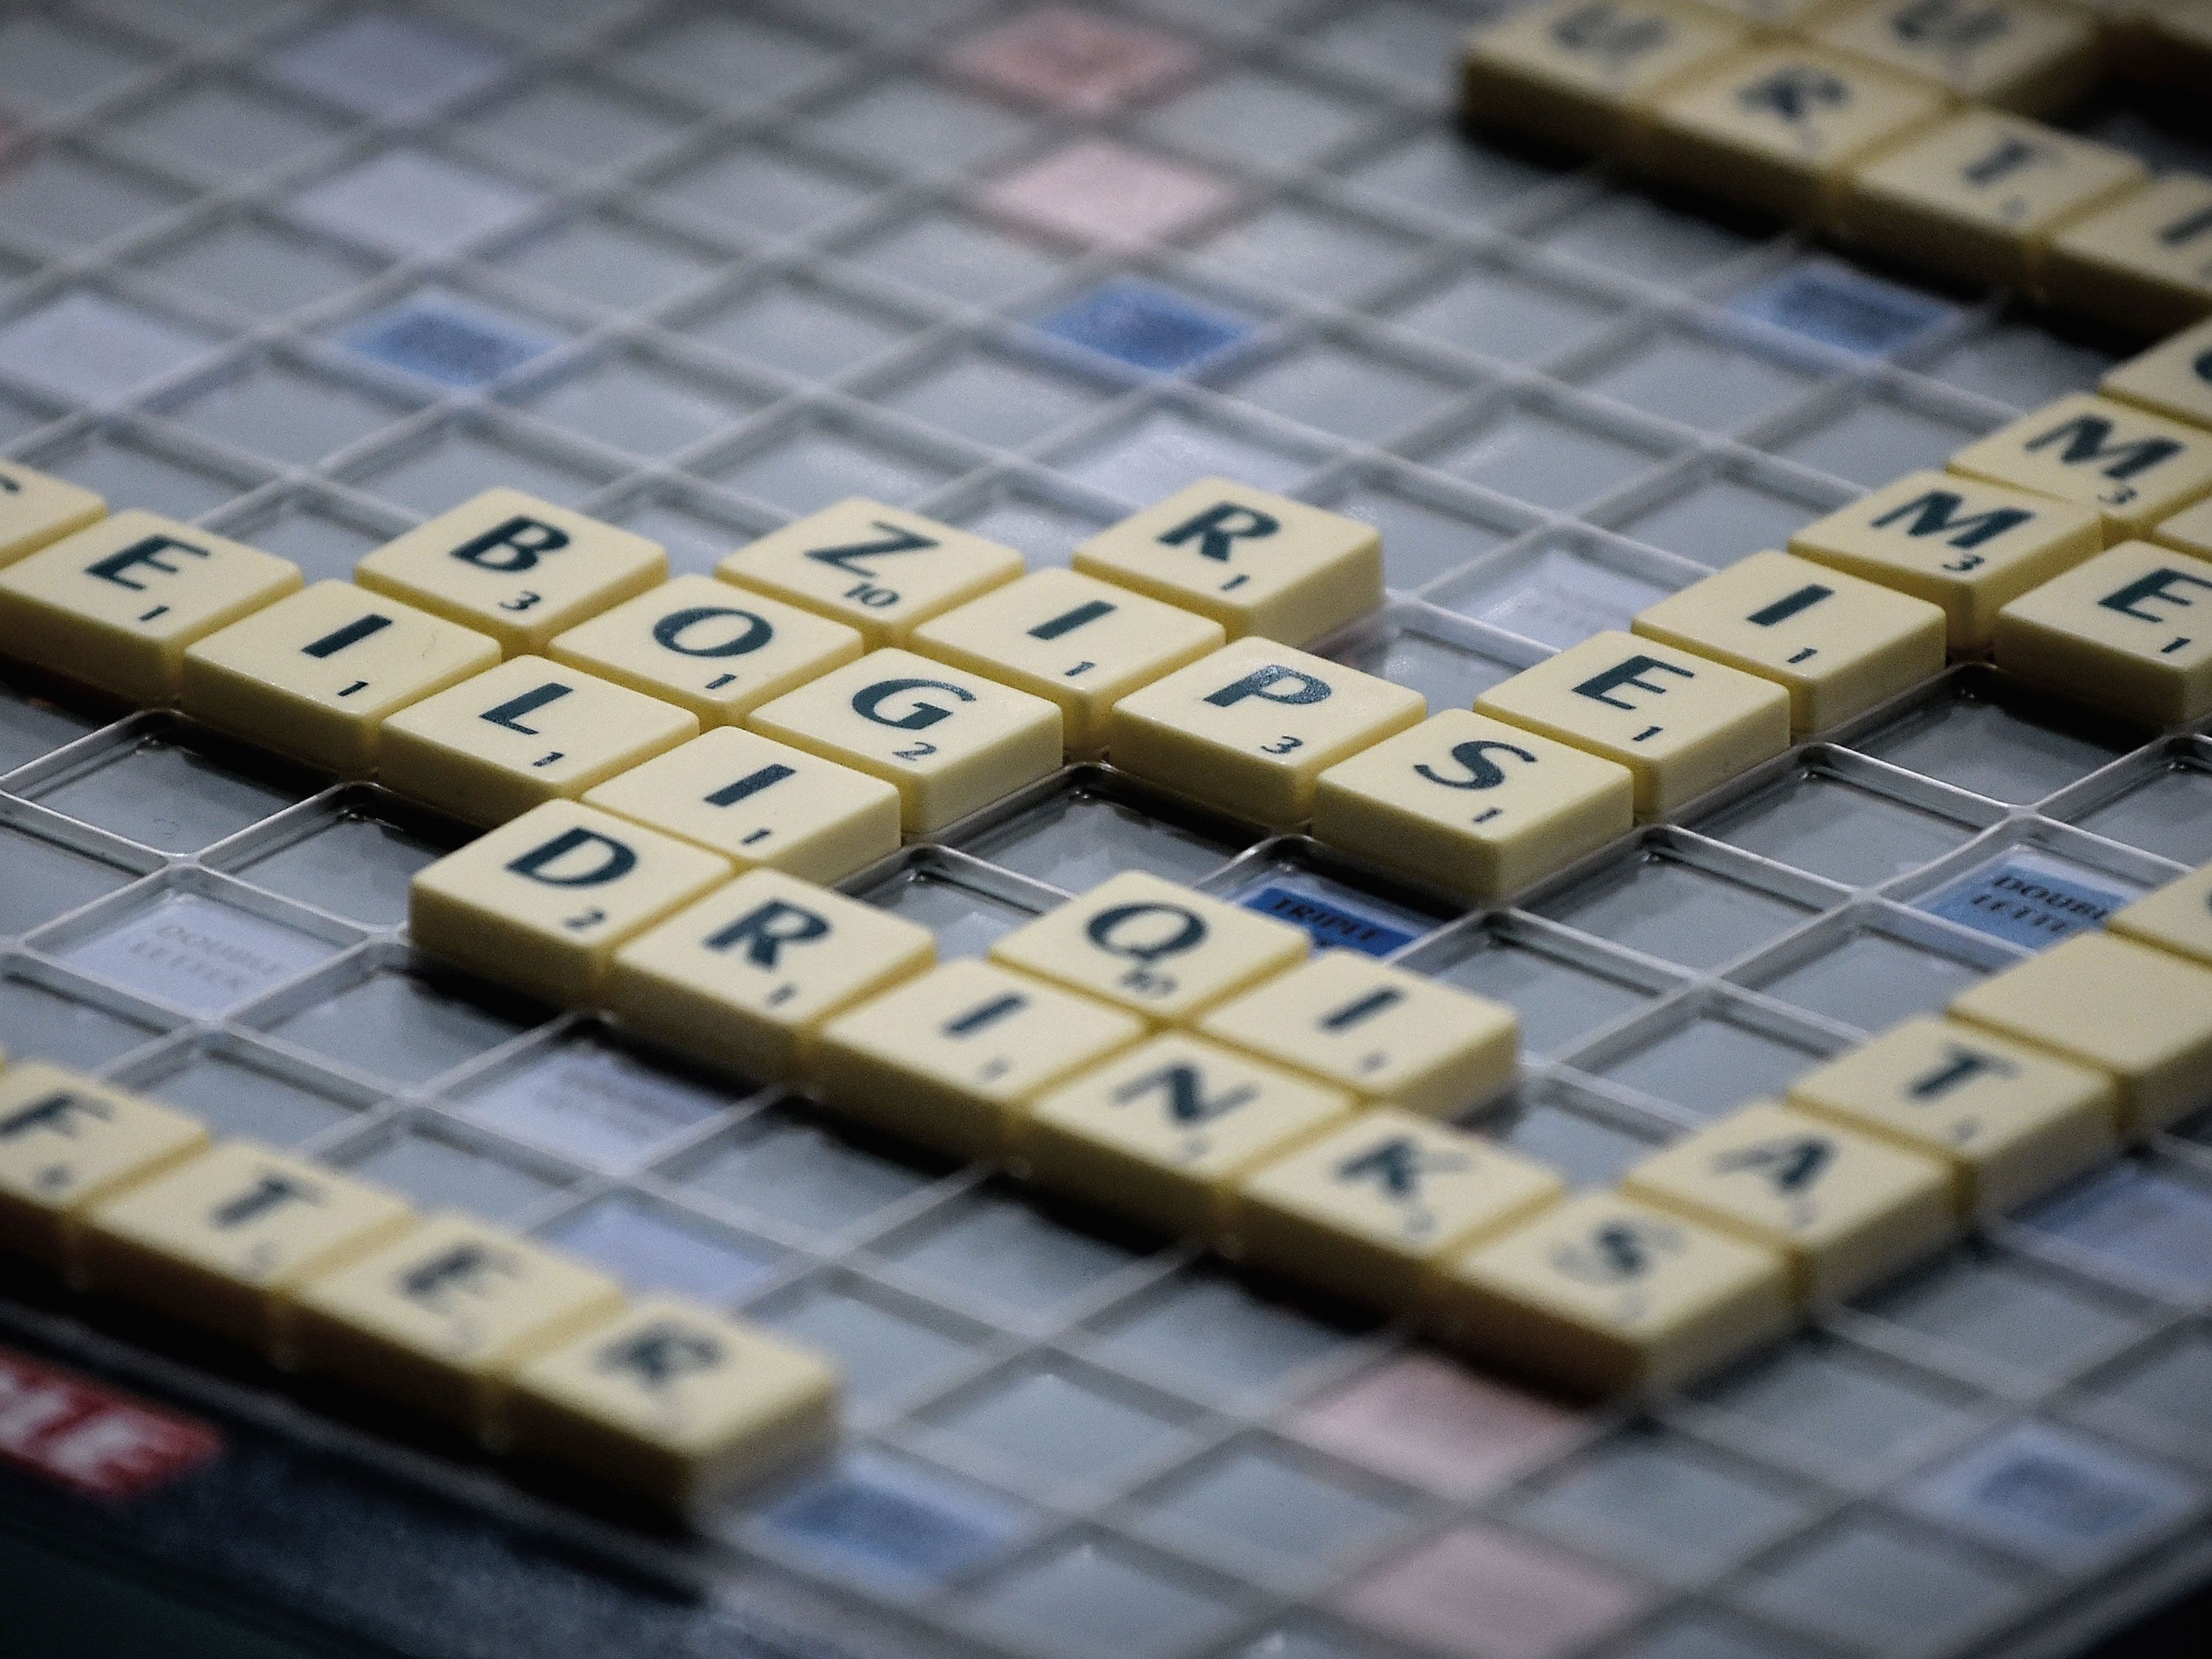 The most commonly misused word in English and what it